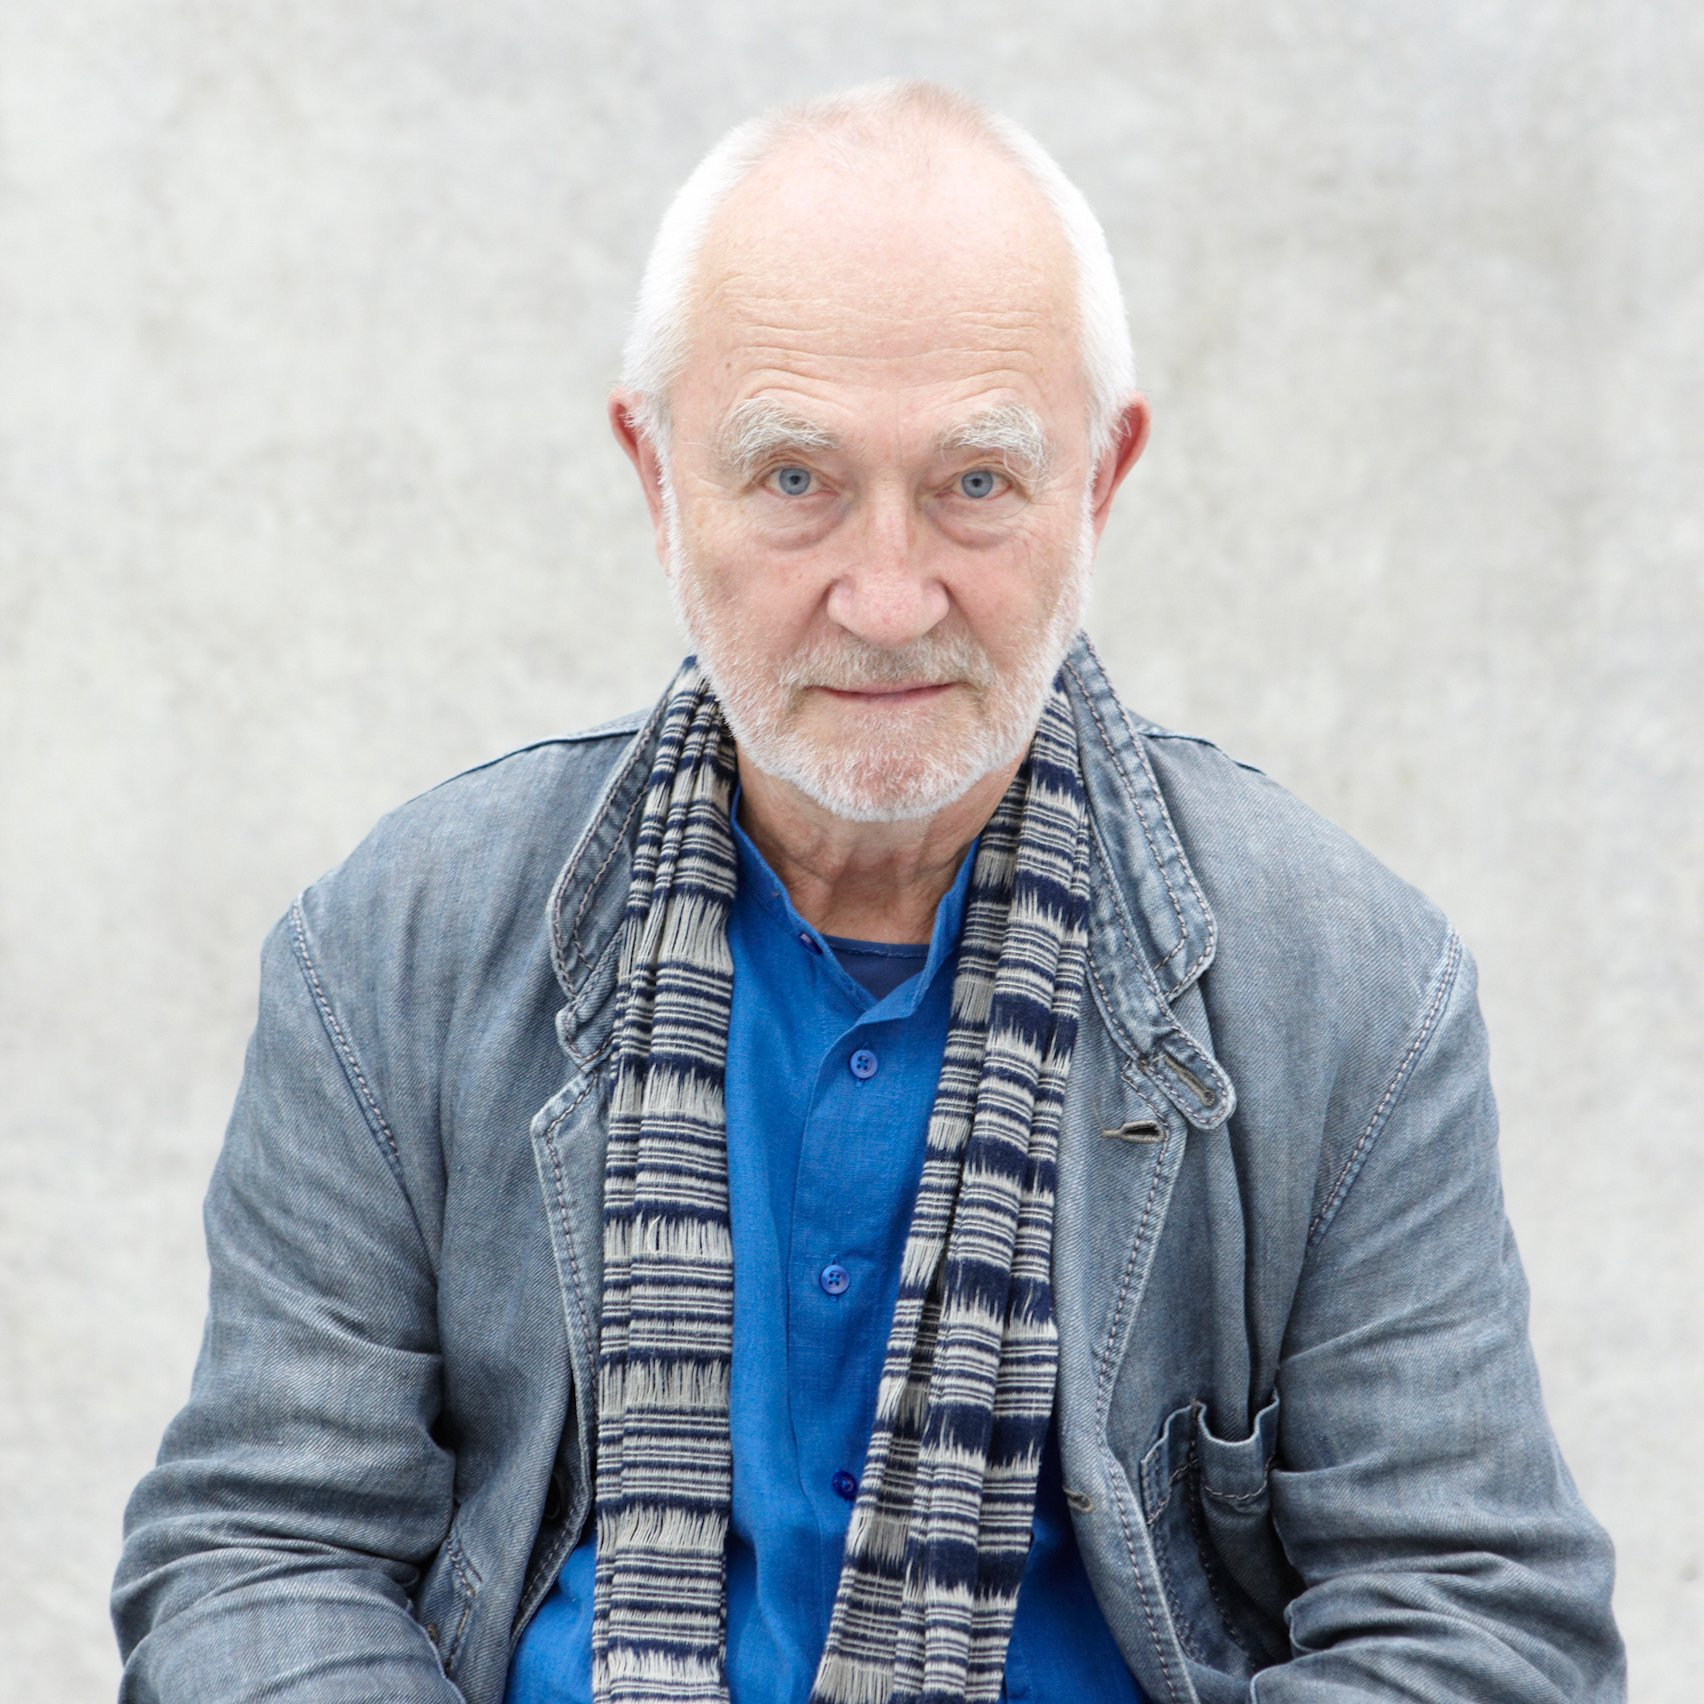 Therme Vals spa has been destroyed says Peter Zumthor